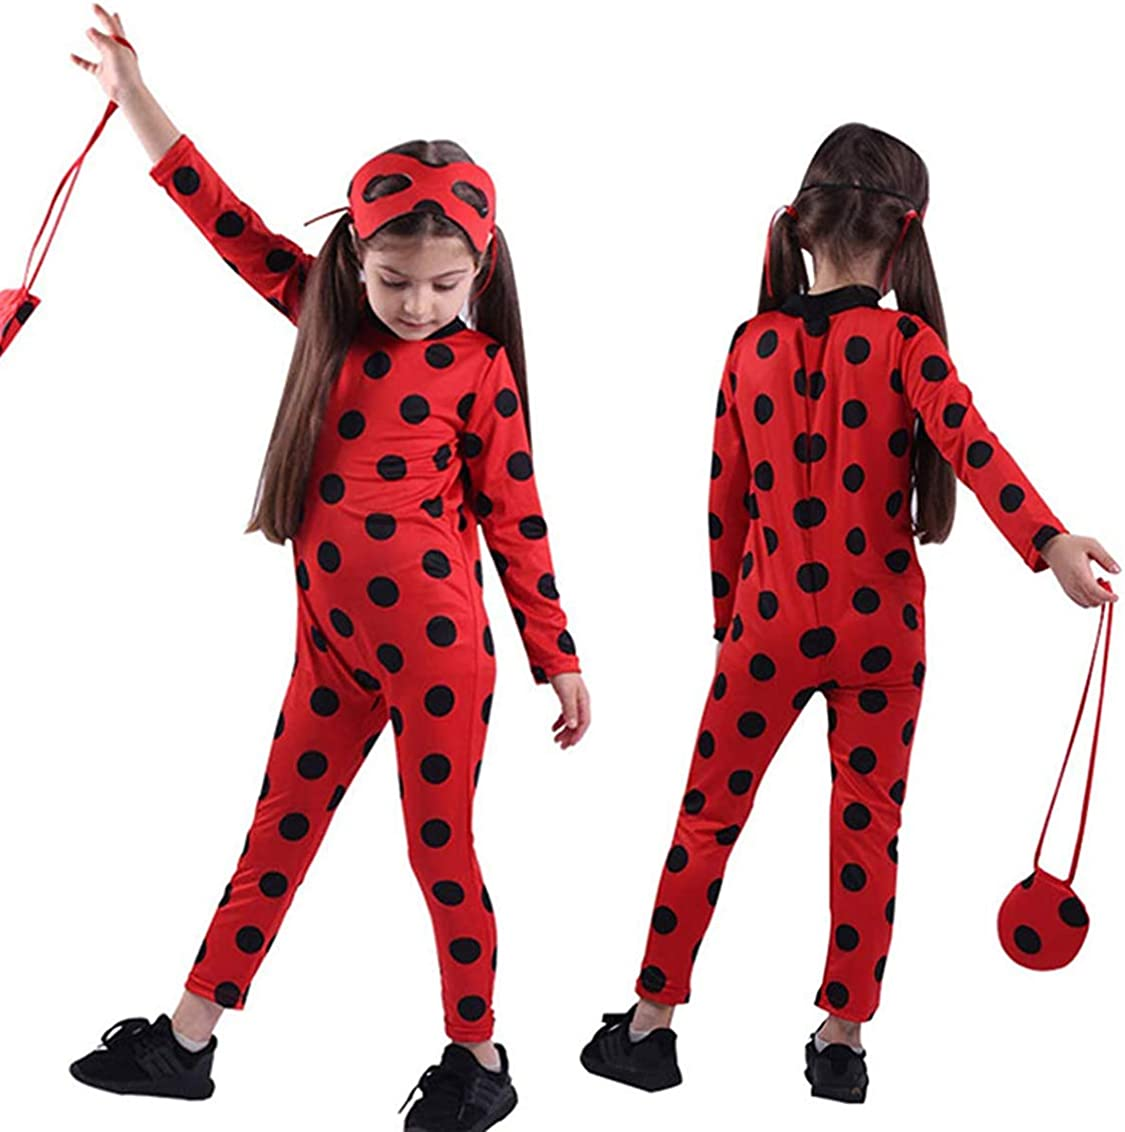 JIMMY Child Size Cosplay Costume Spot Red Jumpsuit with Headwear for Birthday Party Little Beetle Suit Set 6pcs//Bag